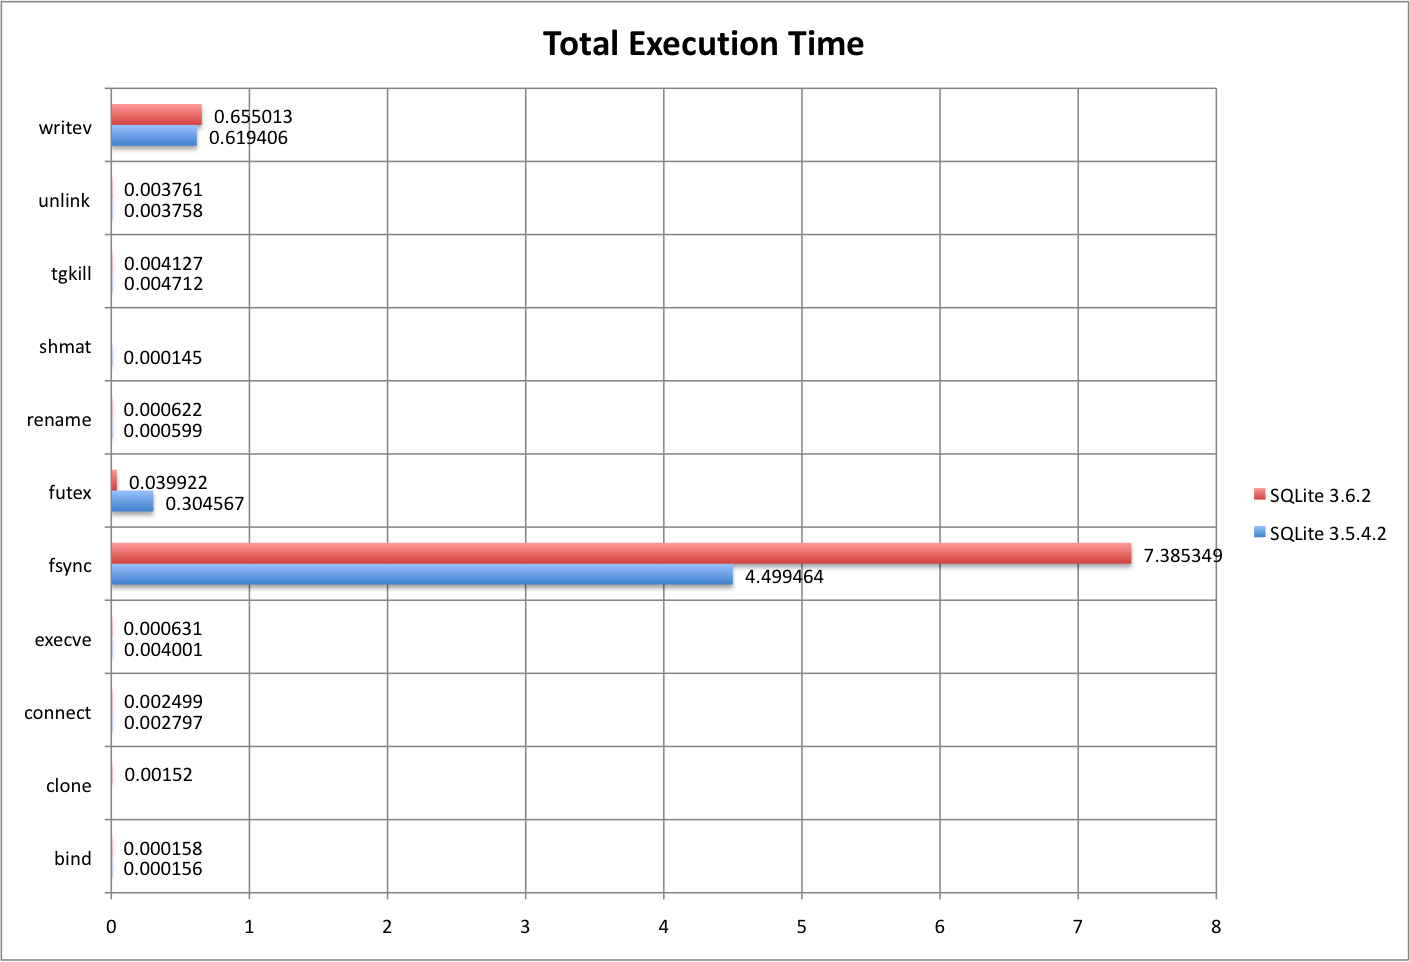 Total execution time